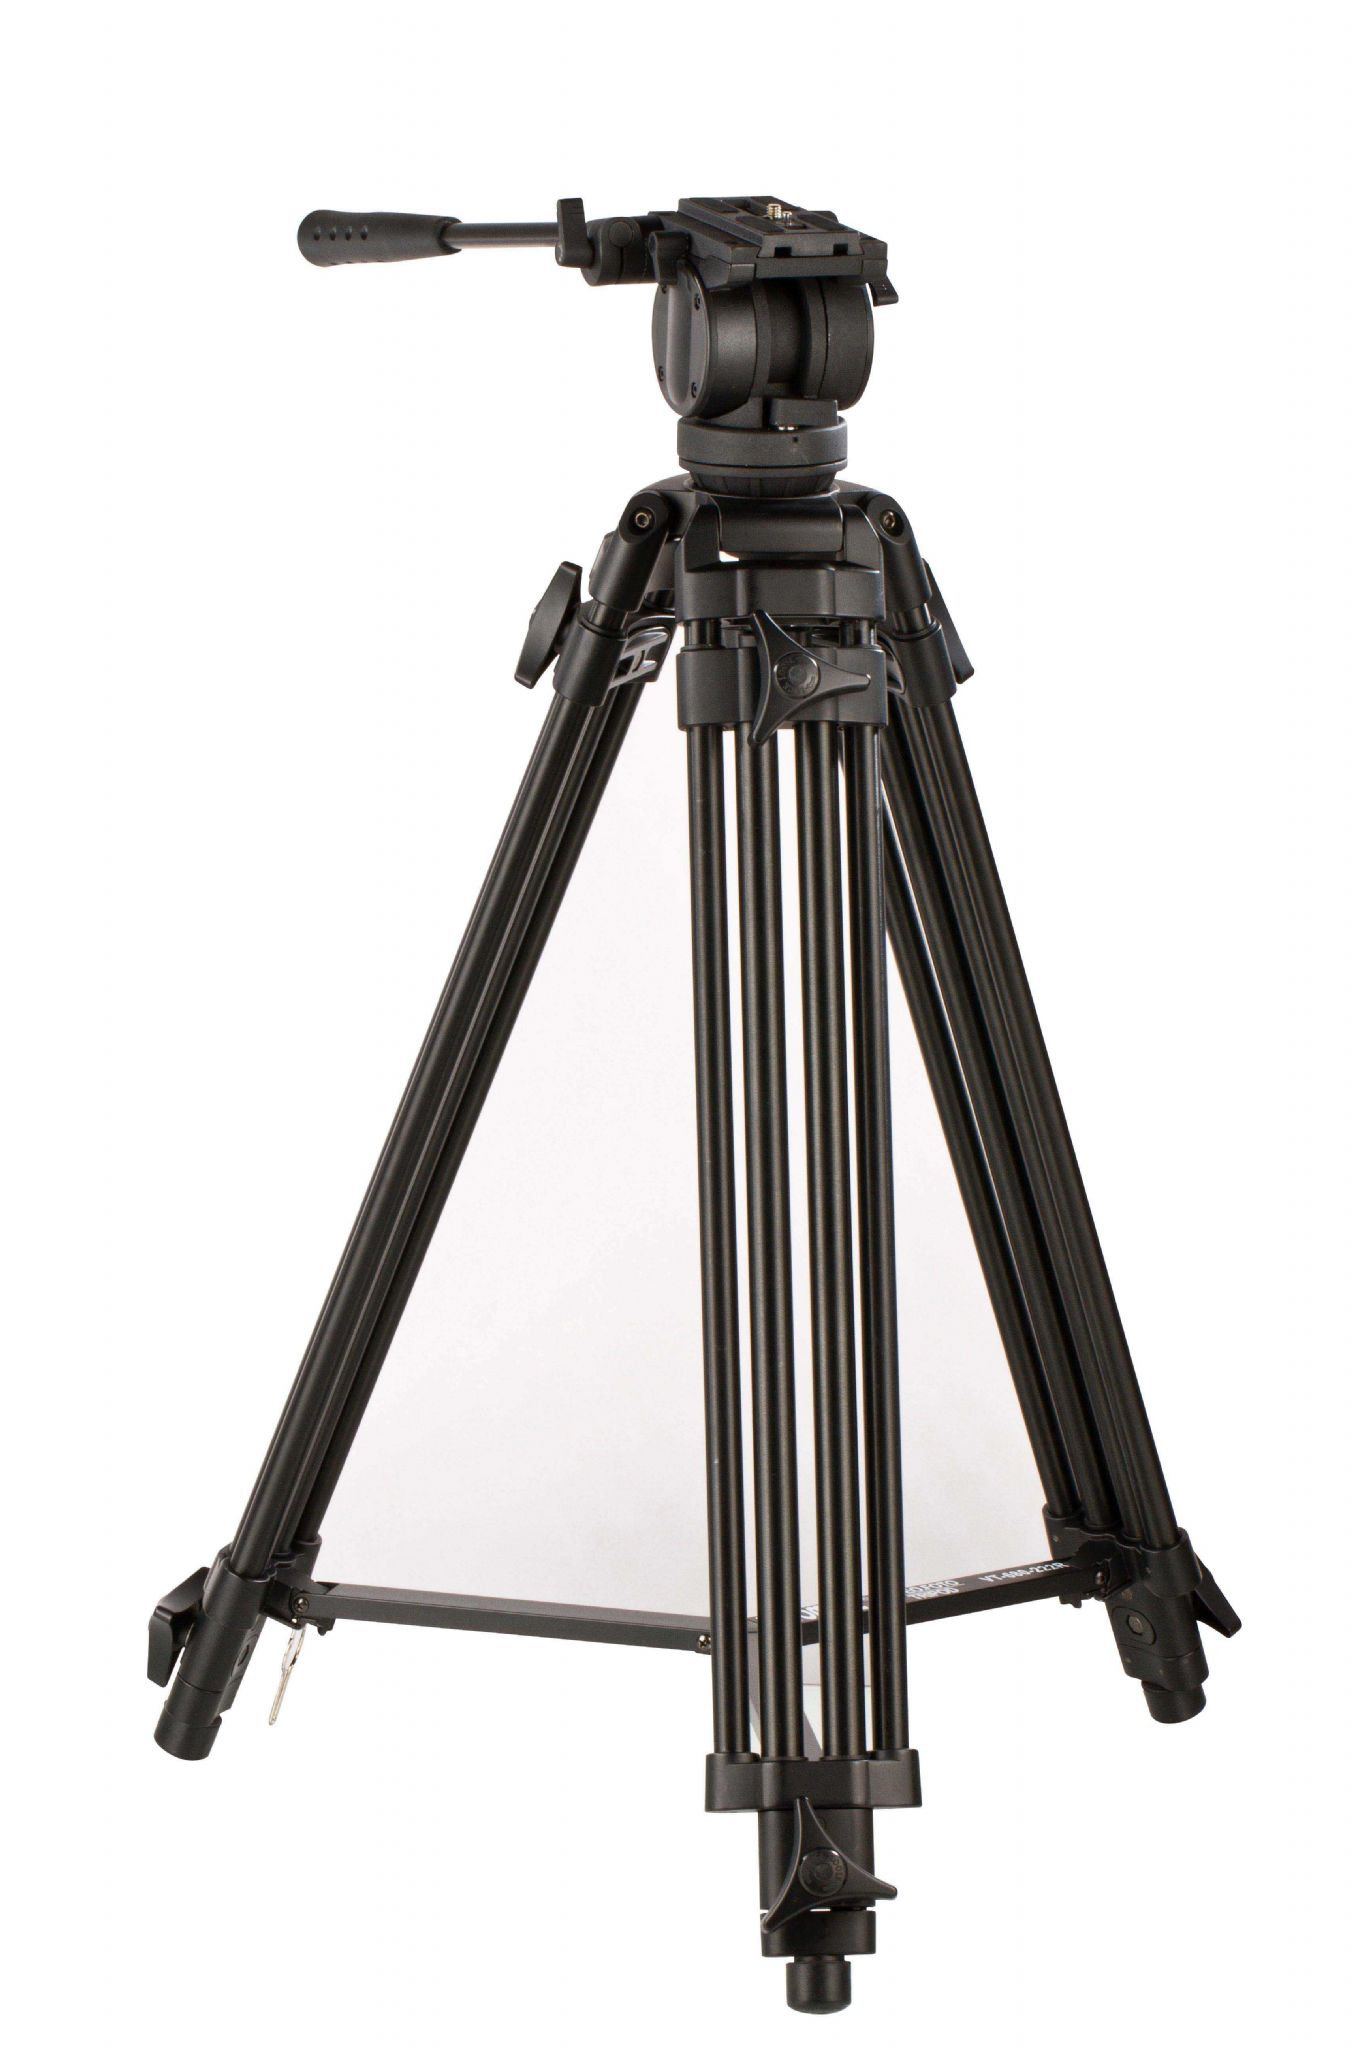 What is a tripod stand?